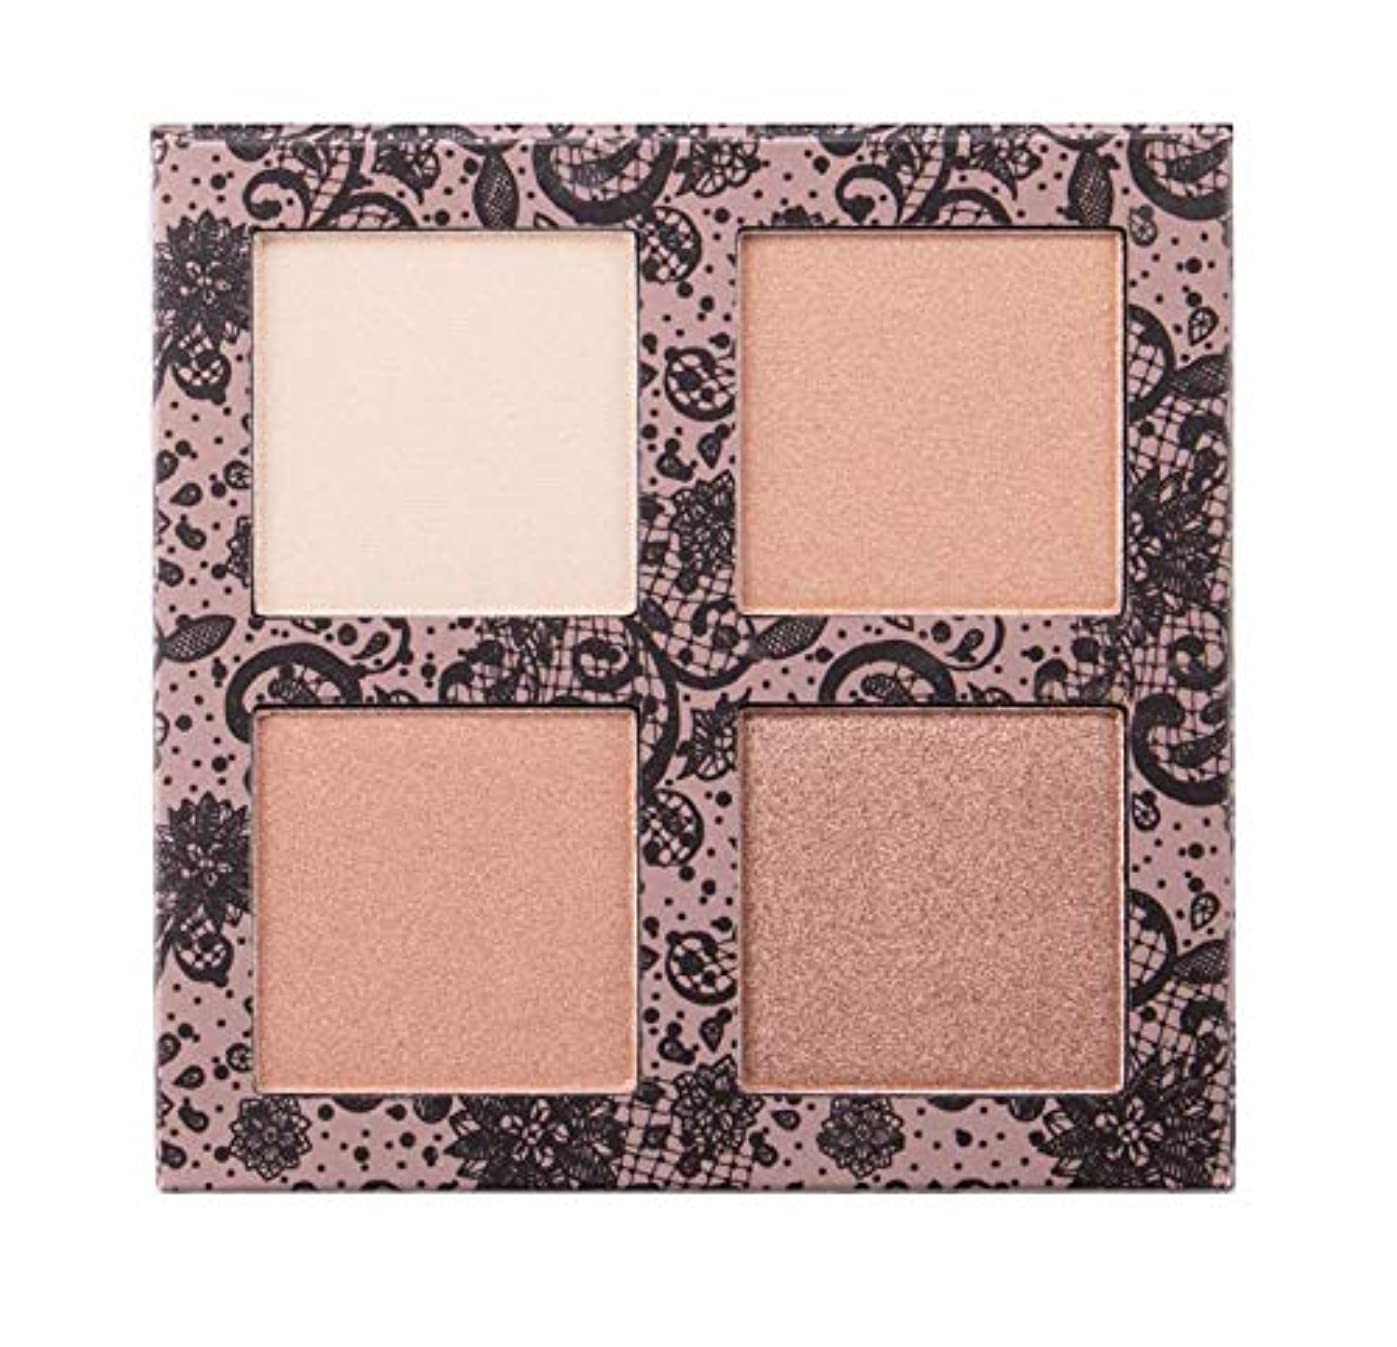 遊び場トースト燃料BEAUTY CREATIONS Scandalous Glow Highlight Palette (並行輸入品)